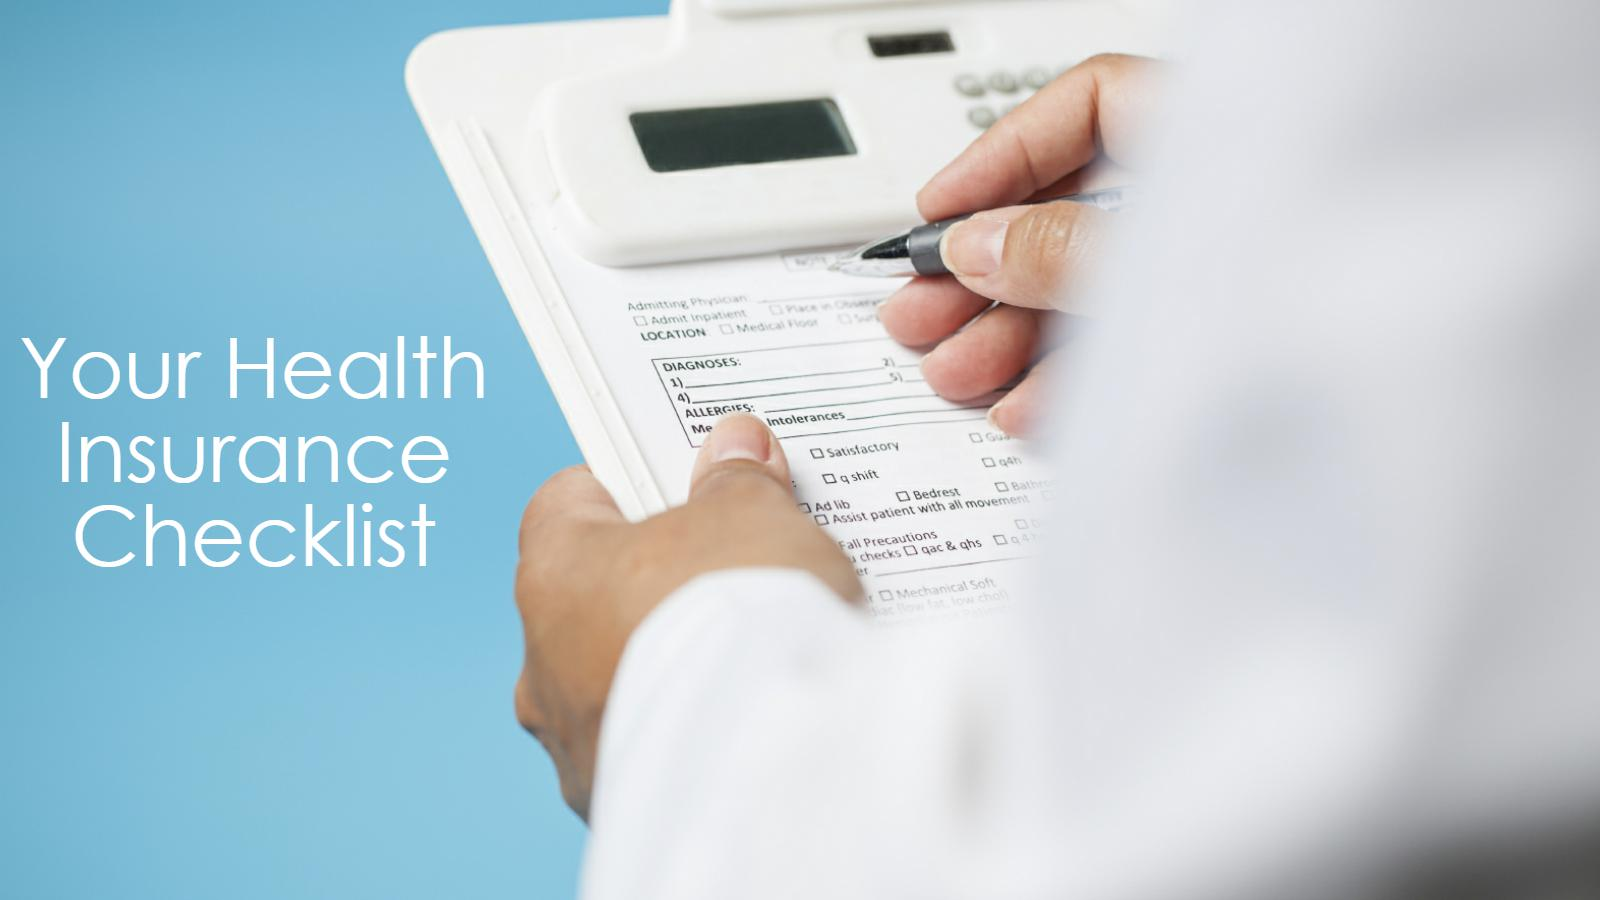 Things to check before you buy a health insurance